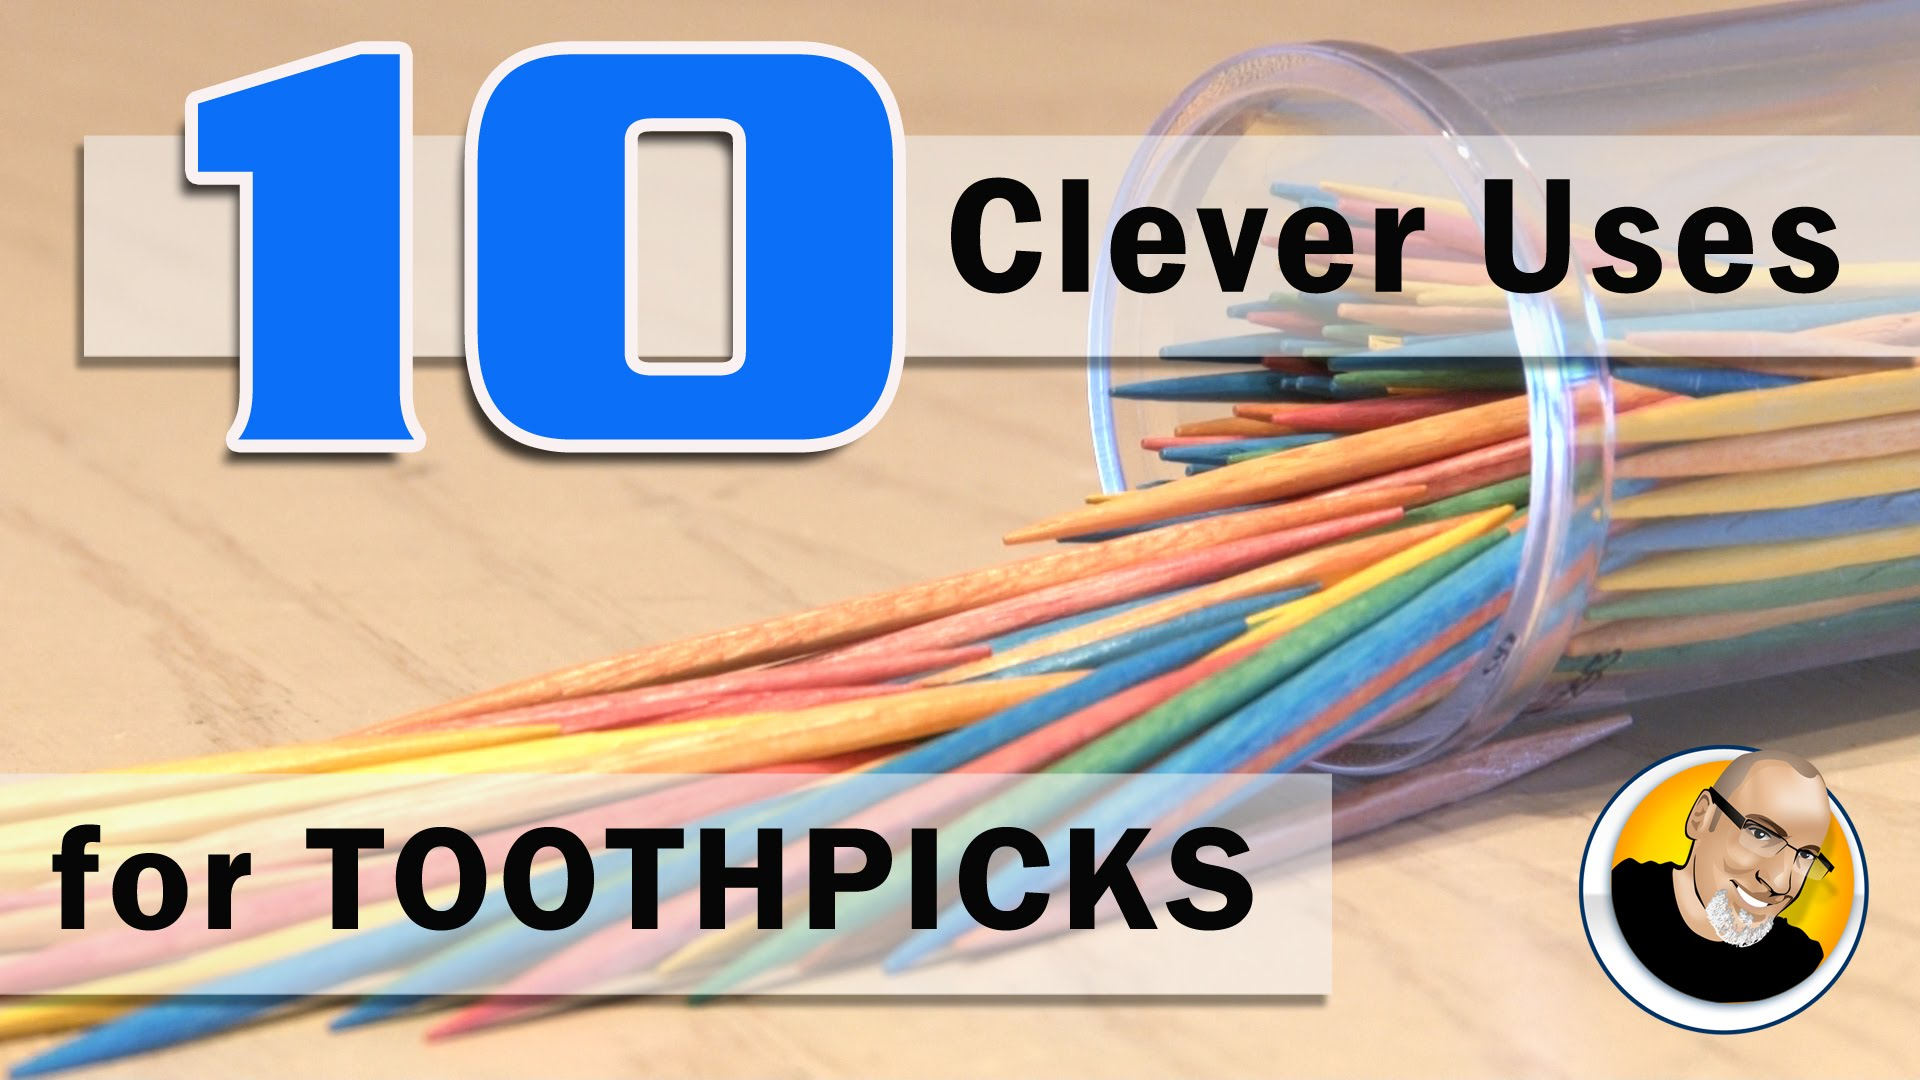 Top 10 Clever Uses for Toothpicks!